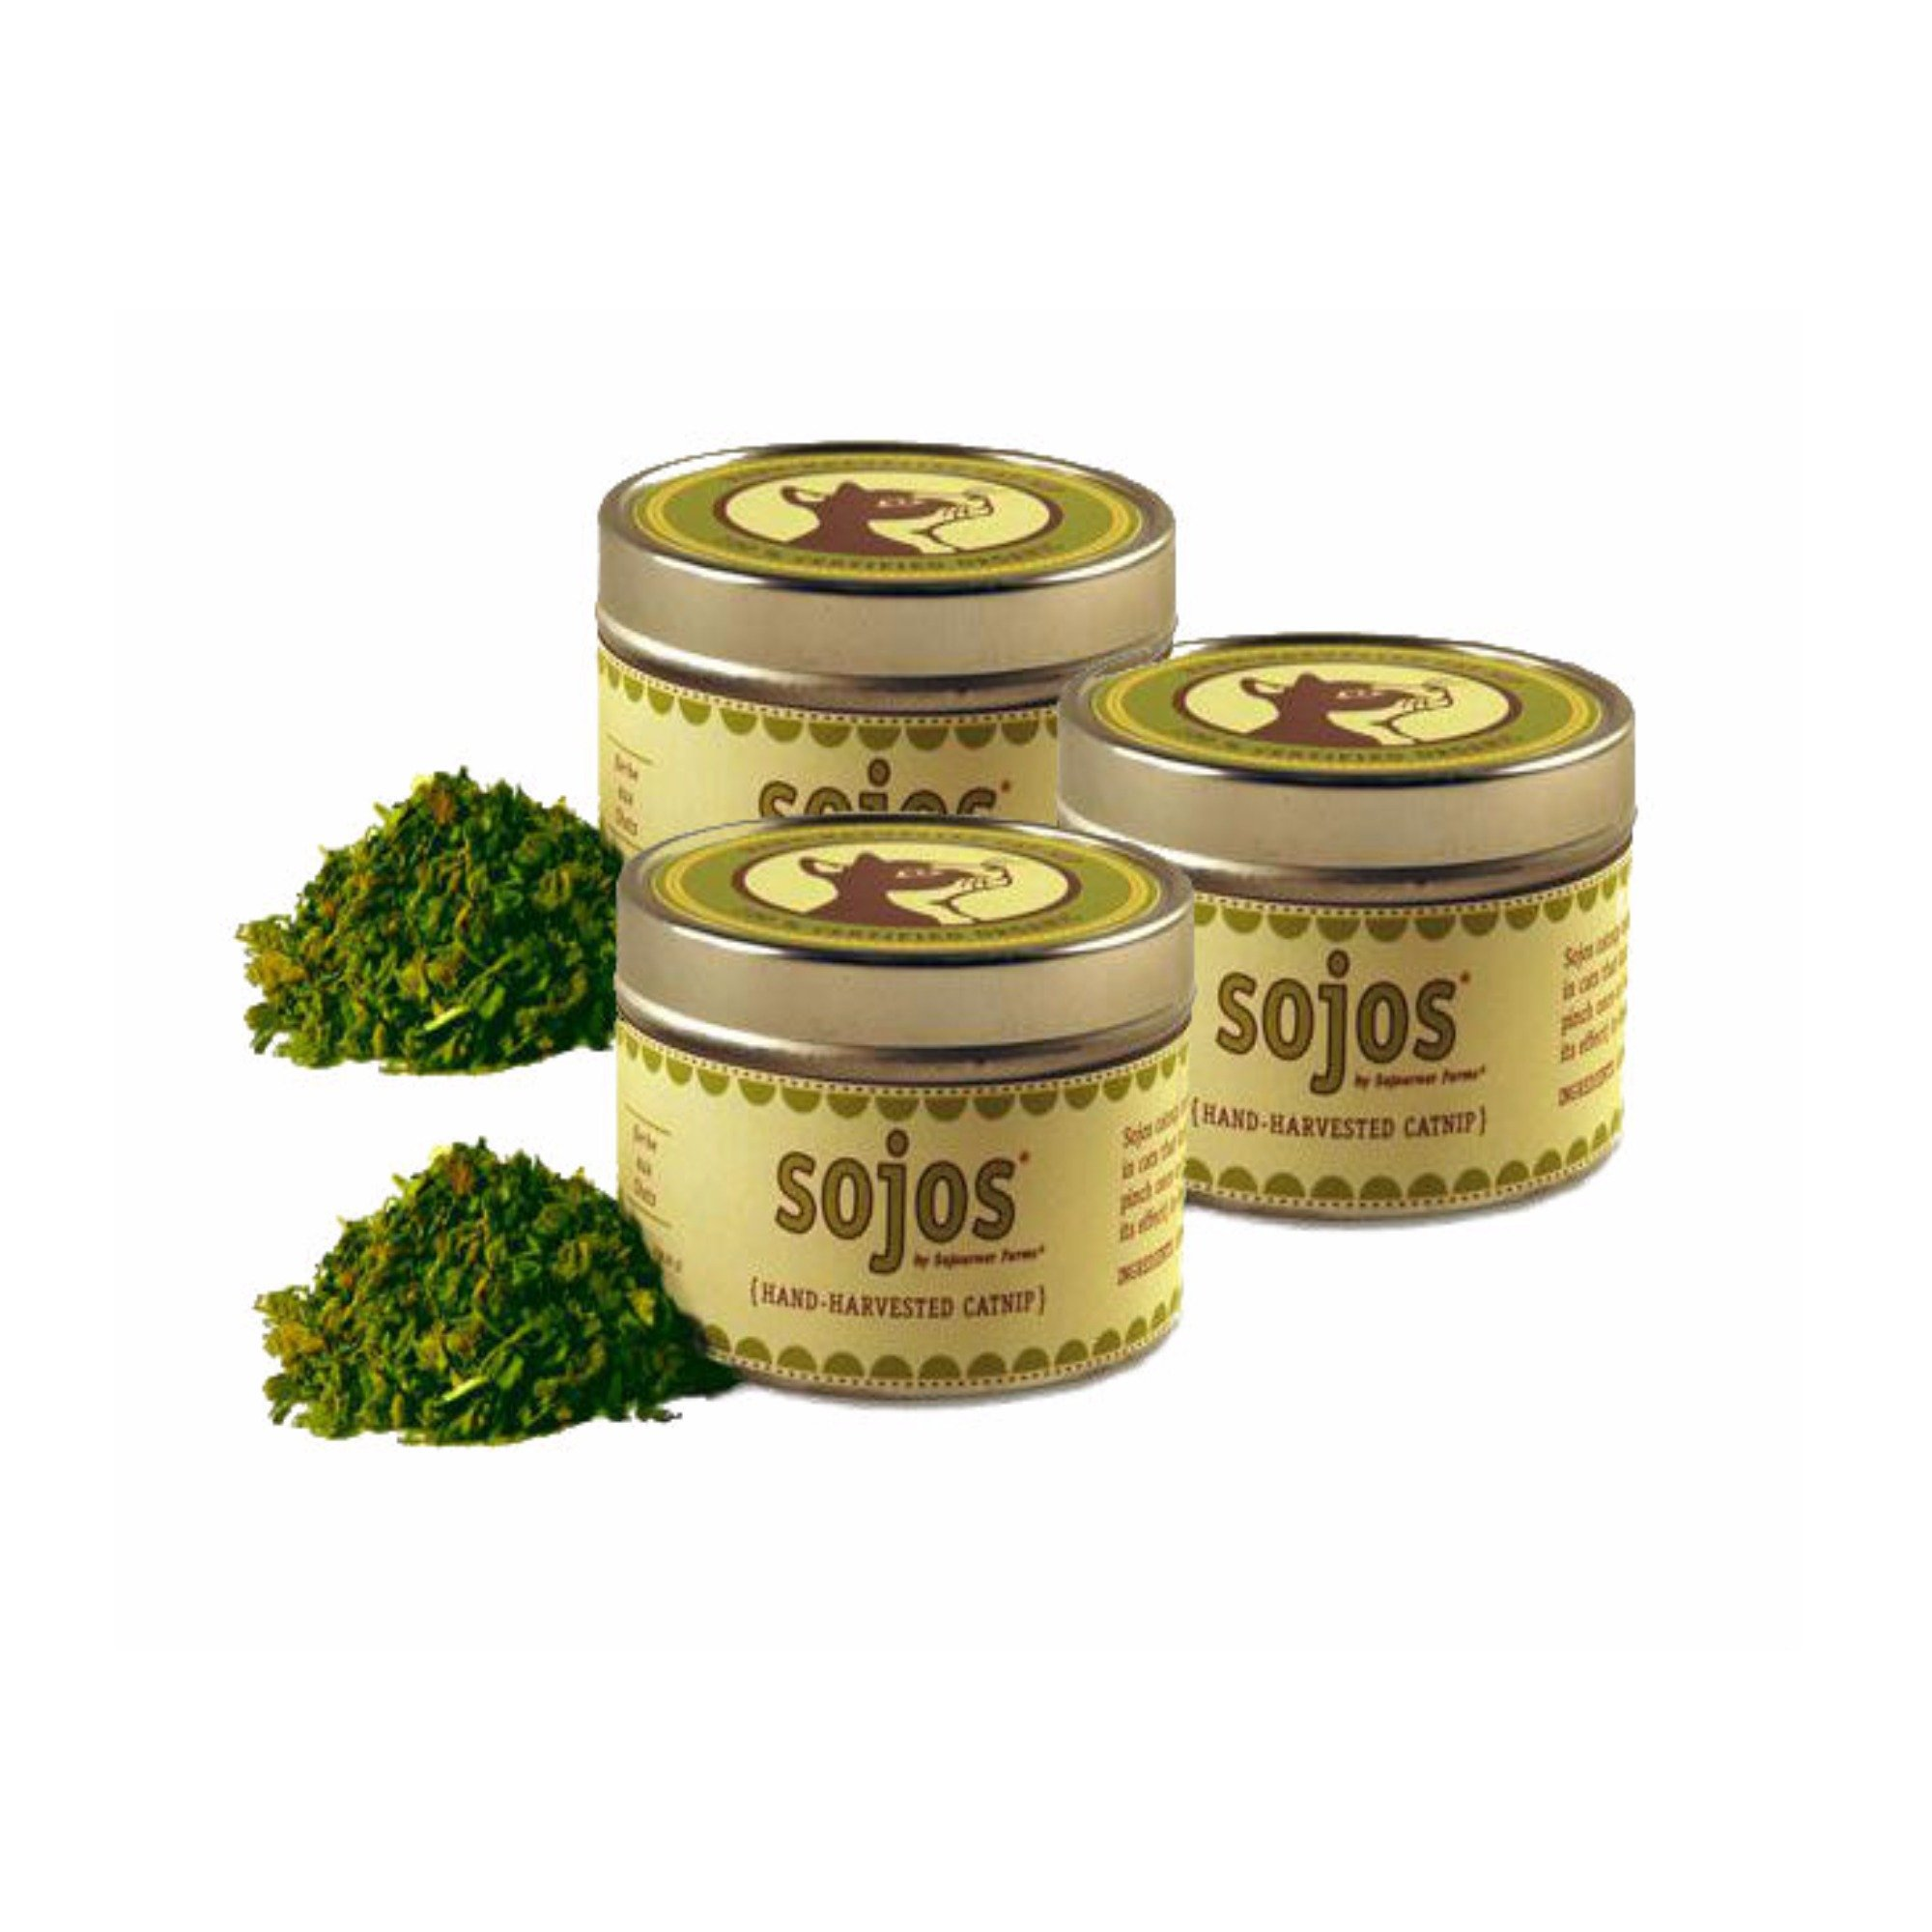 SOJOS Organic Catnip with Gift Tin Cat Treat or Refill Catnip Toys - 1 oz 3 Pack by SOJOS (Image #1)